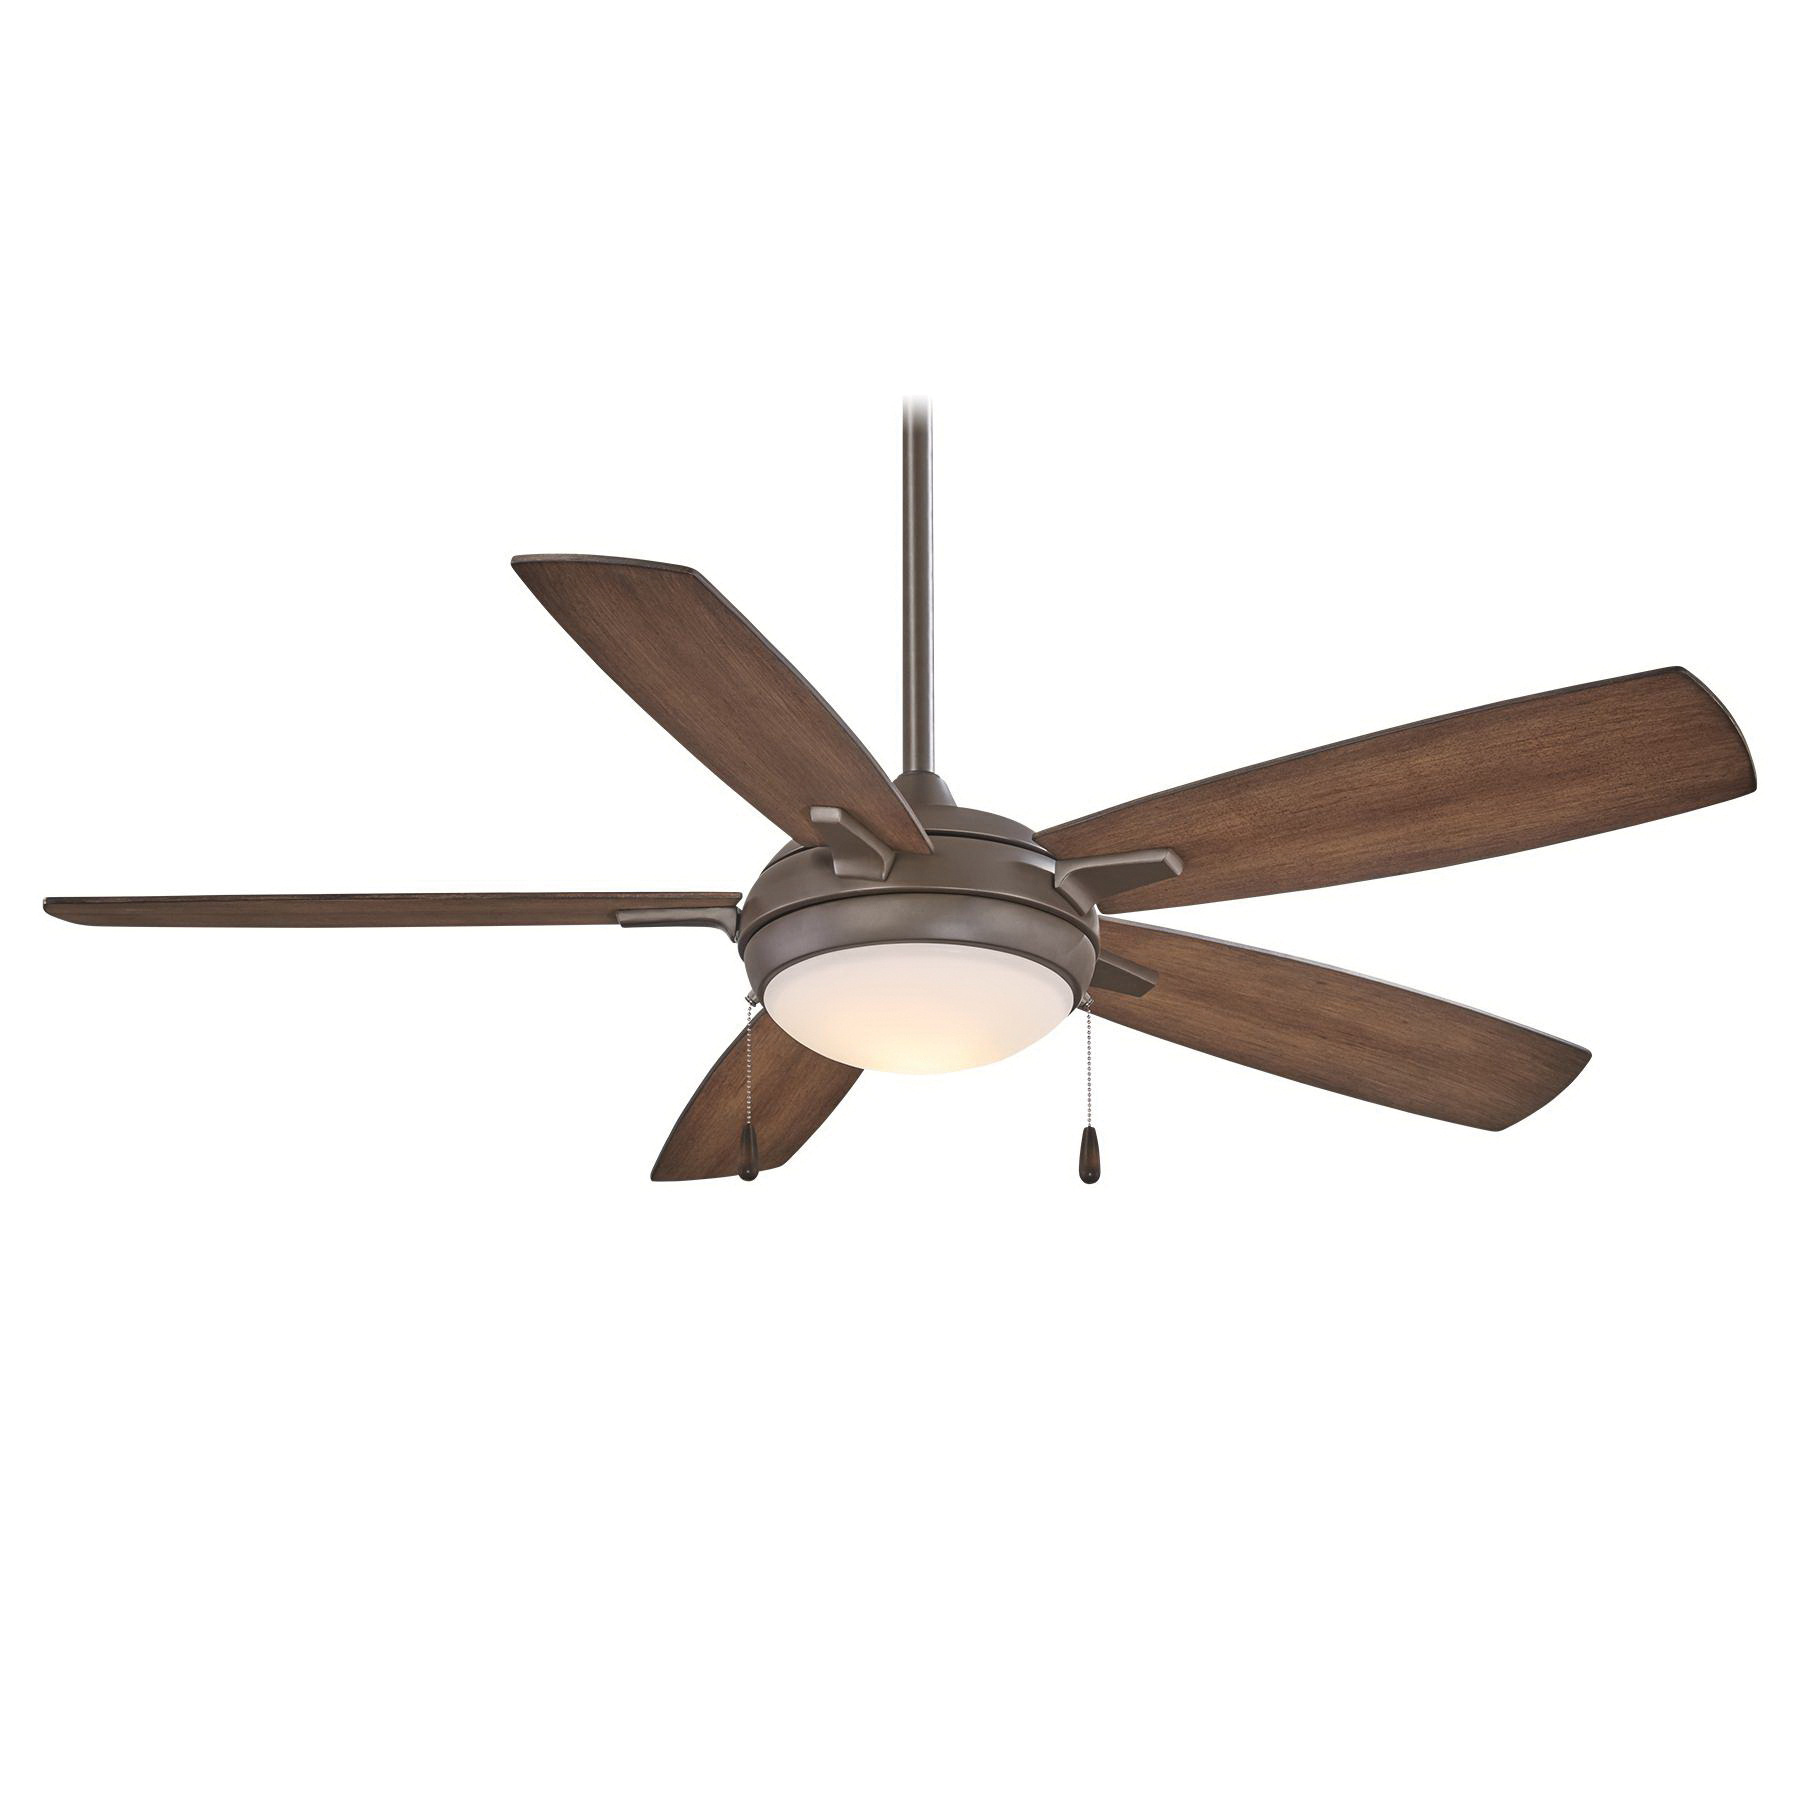 Minka-Aire F534L-ORB Ceiling Fan With Light 54 Inch 5 Blade 3 Speed Oil Rubbed Bronze Lun-Aire